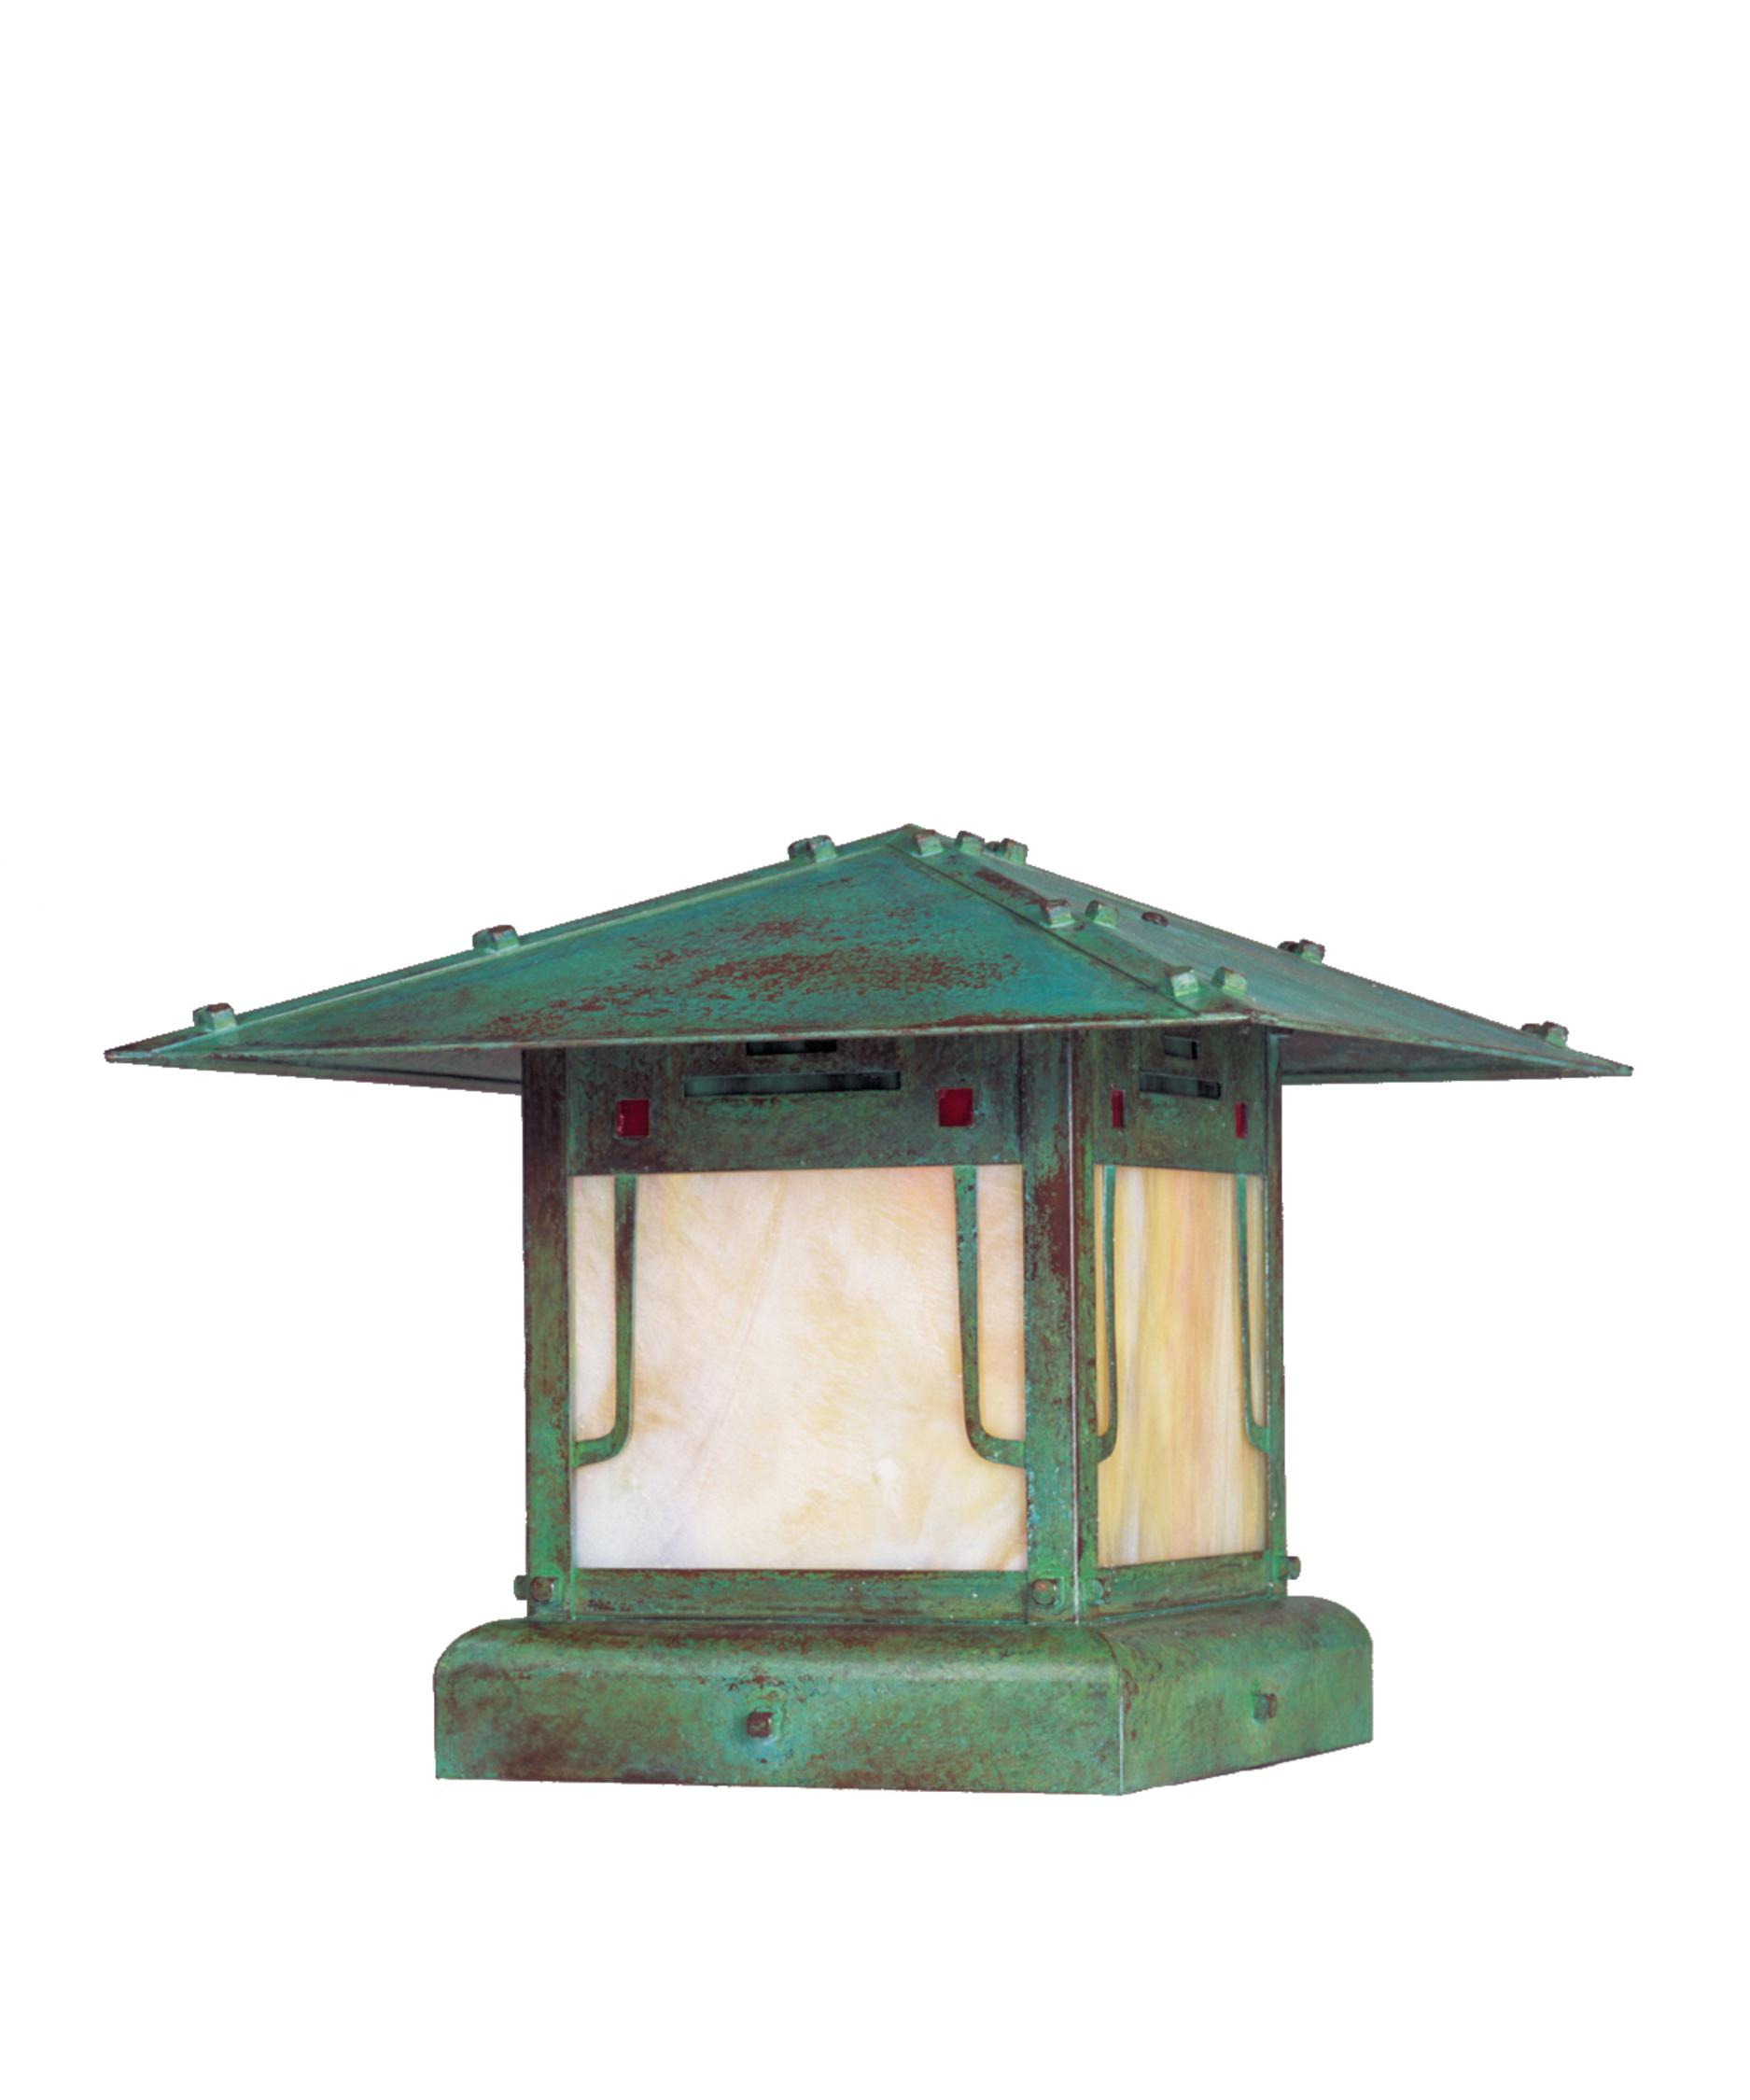 arroyo craftsman outdoor lighting warisan lighting arroyo craftsman outdoor lighting warisan lighting carriage lights outdoor warisan lighting